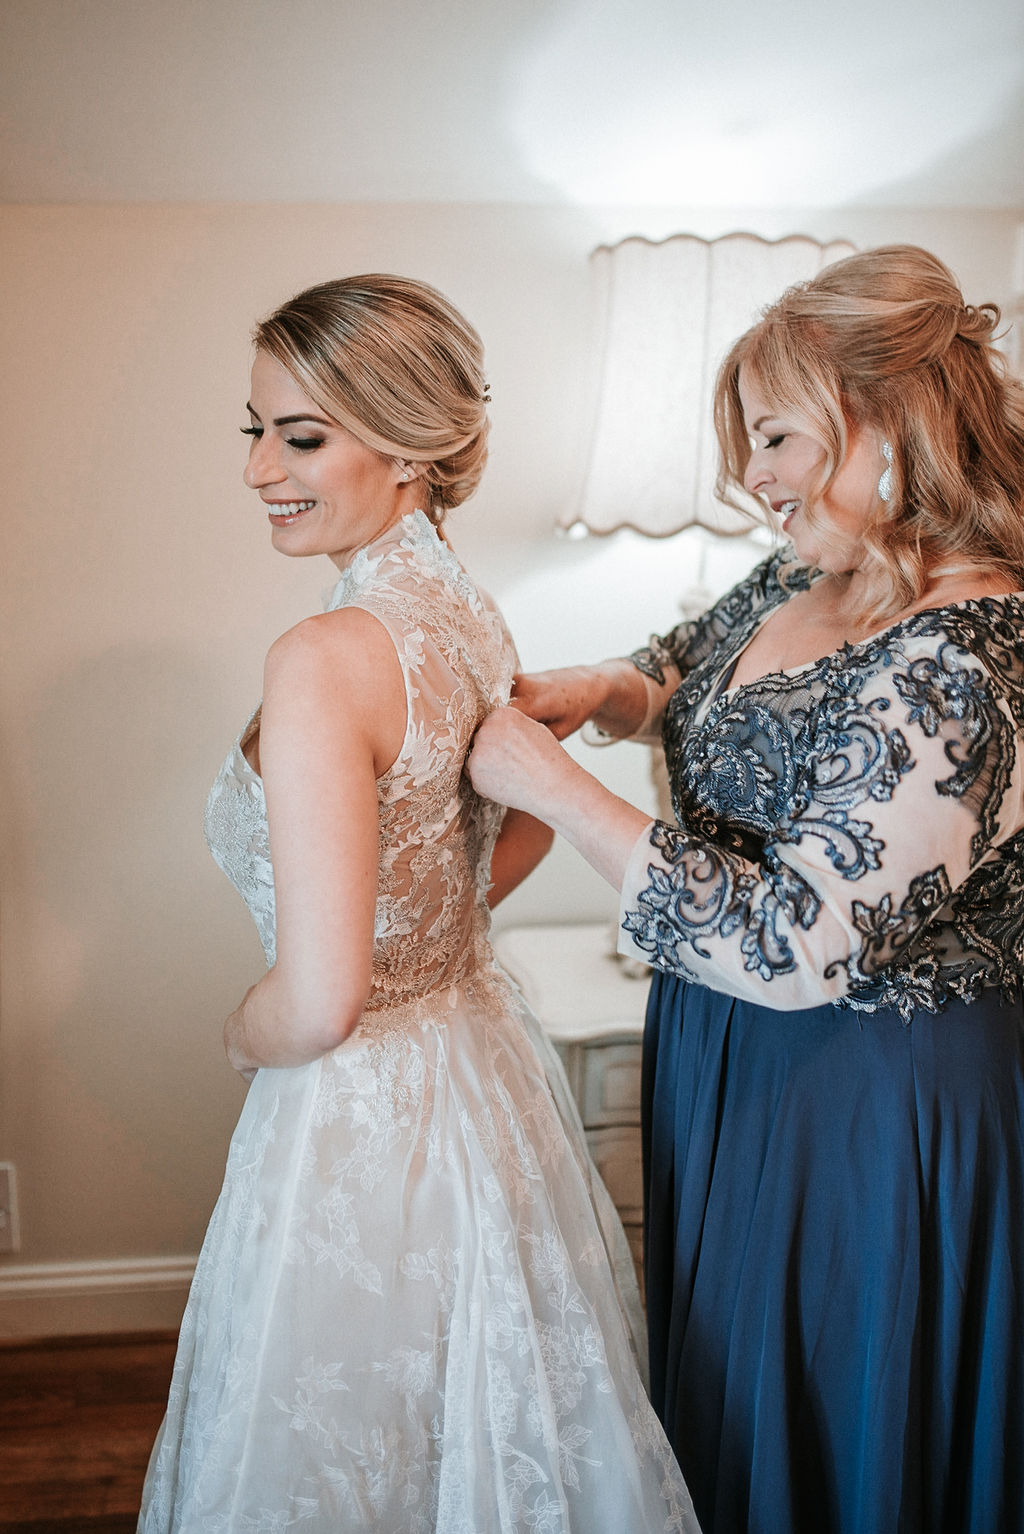 Mother of the Bride helping Bride get into Wedding dress at Bluemont Vineyard